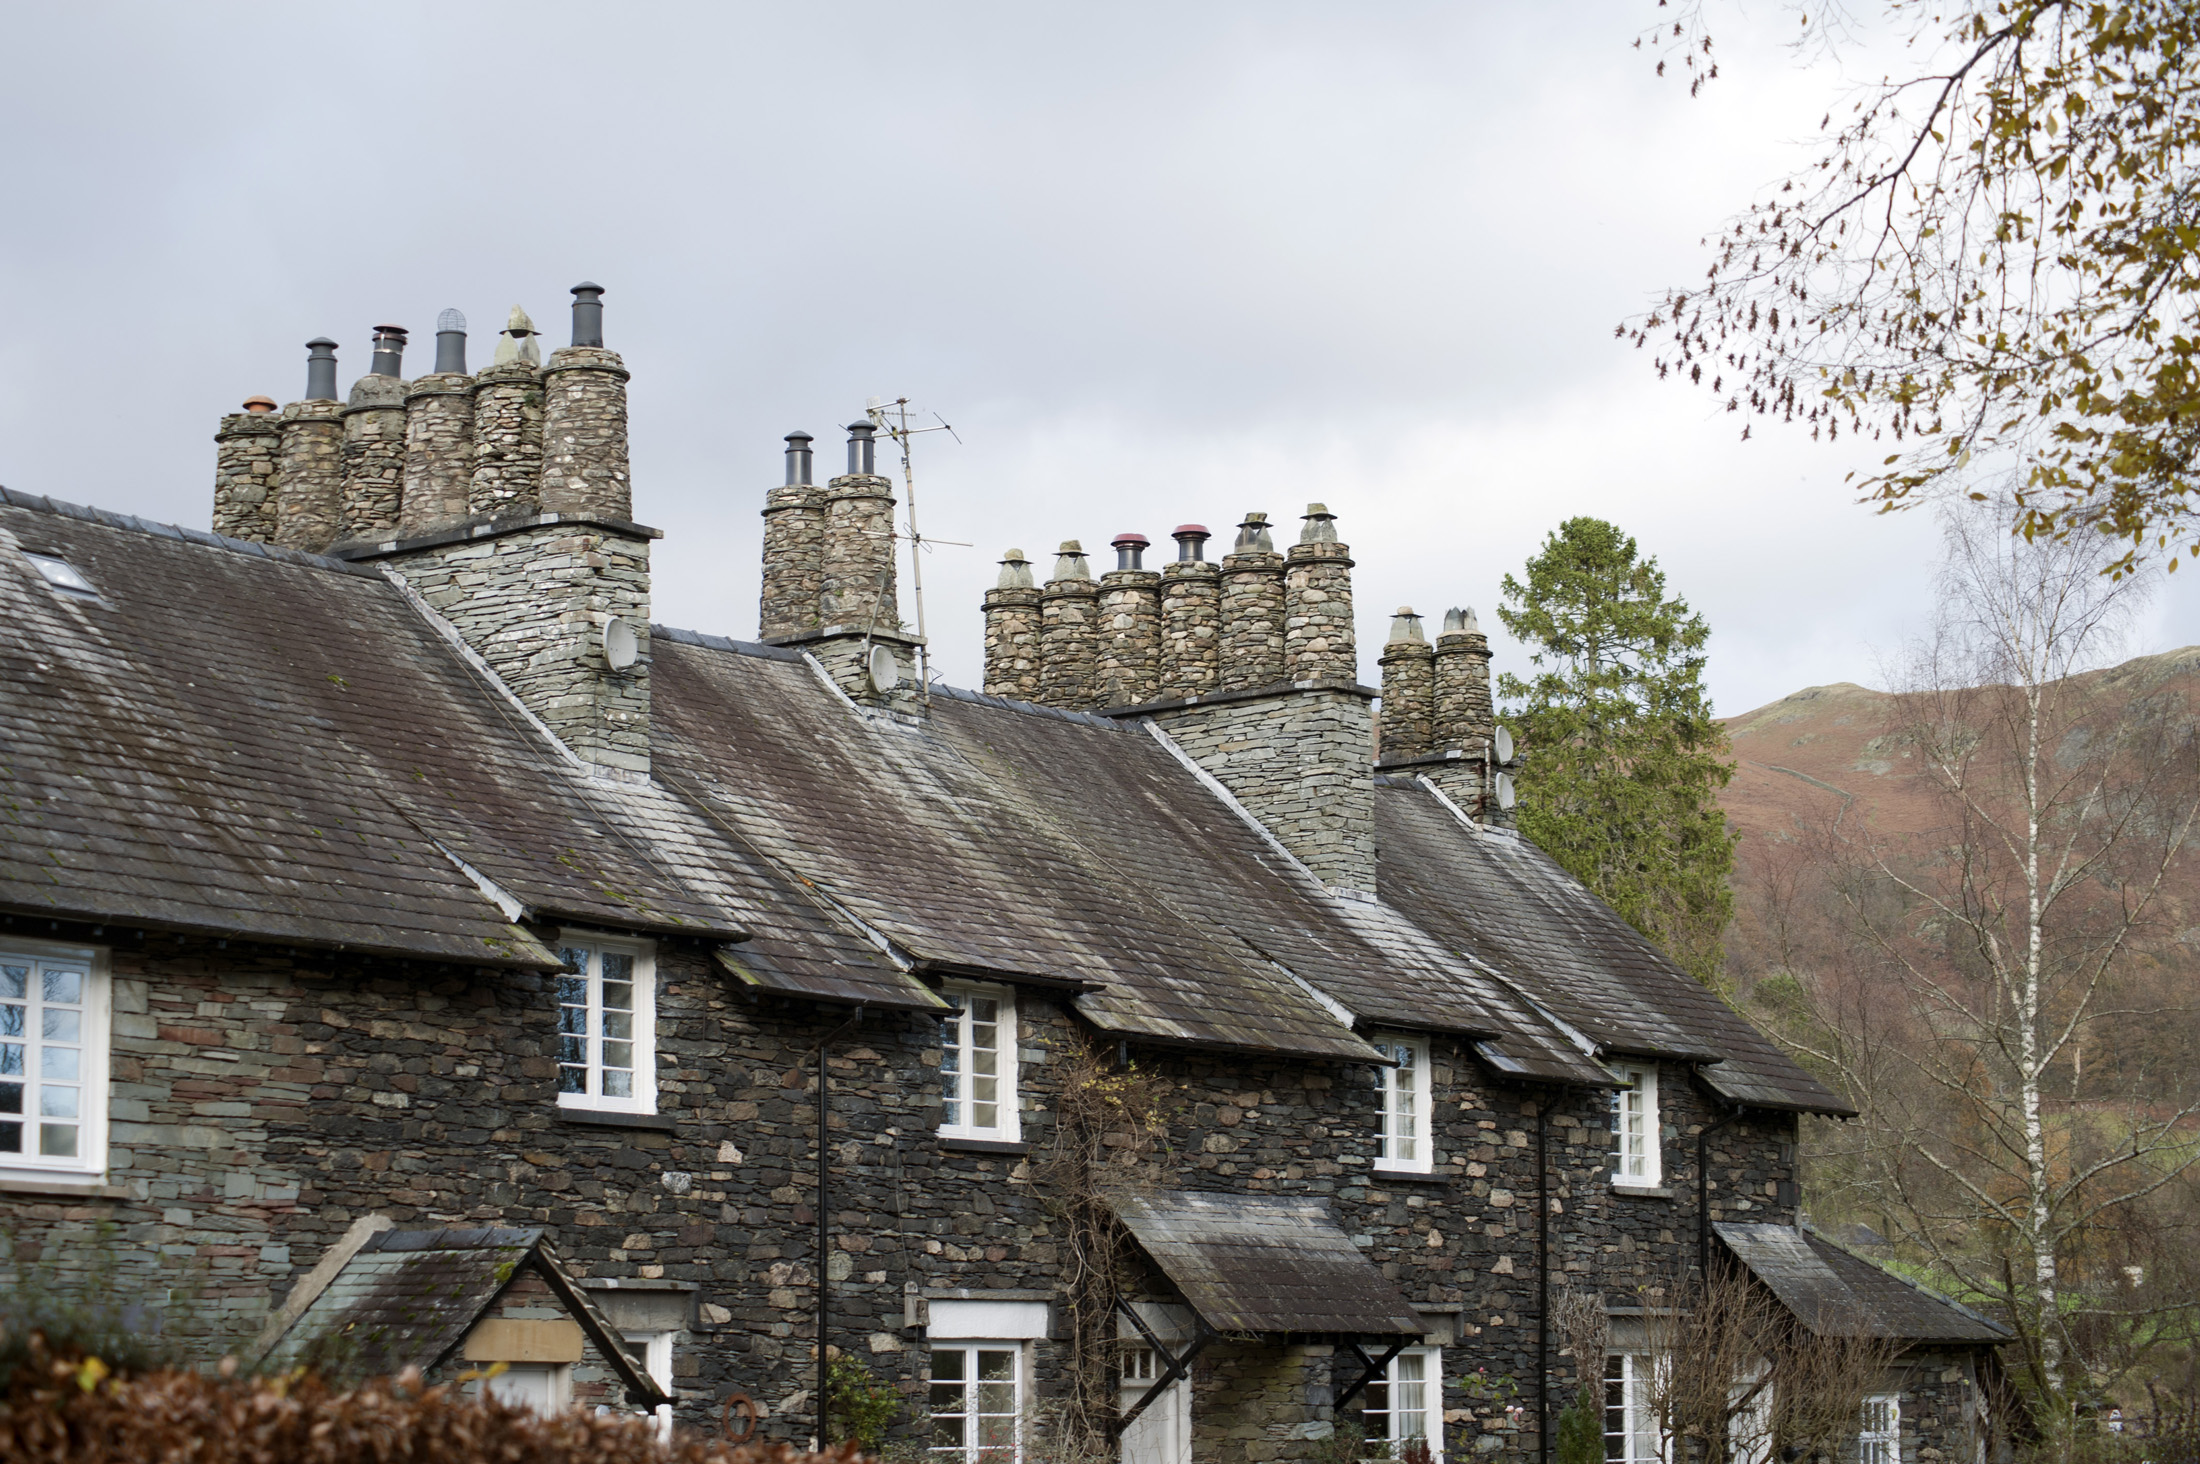 Typical English stone cottages at Skelwith Bridge in the Lake District in Cumbria an area popular with tourists and sightseers